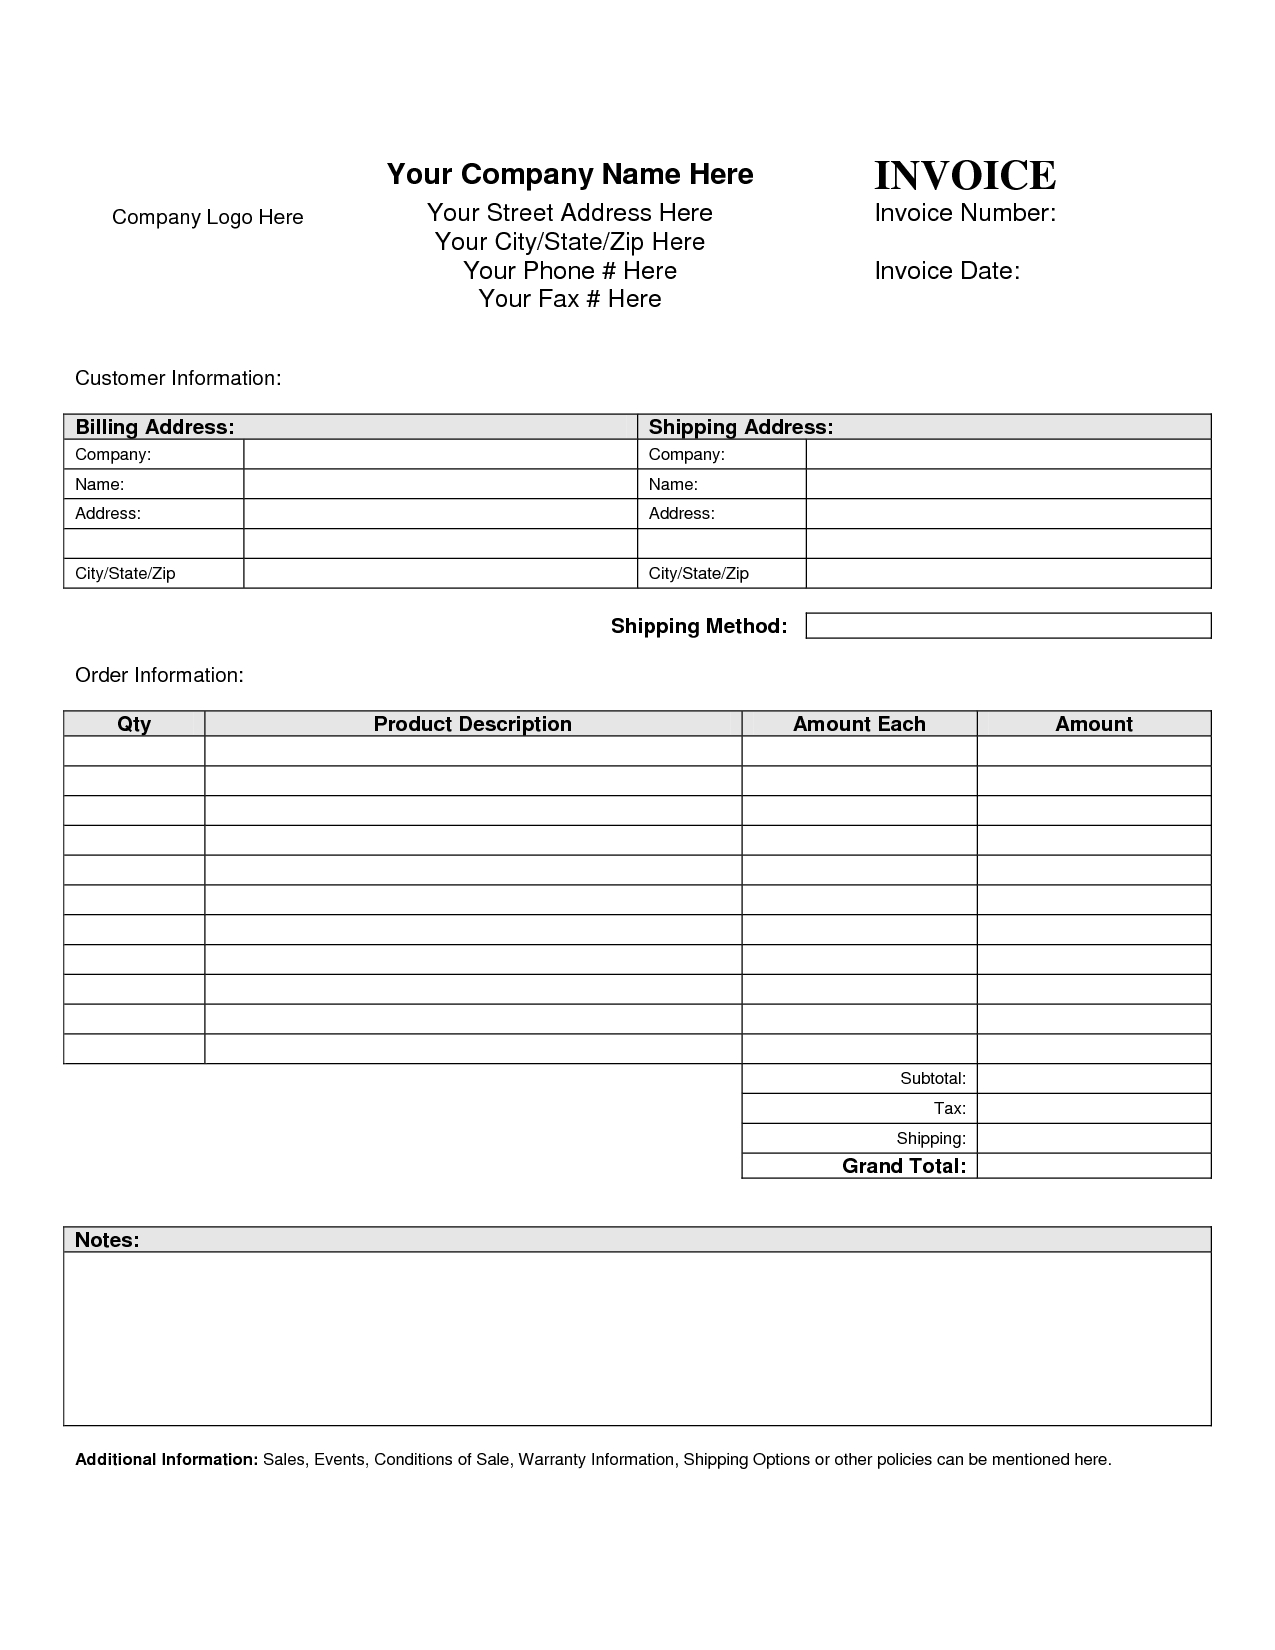 template for a invoice blank invoice template blankinvoice 1275 X 1650